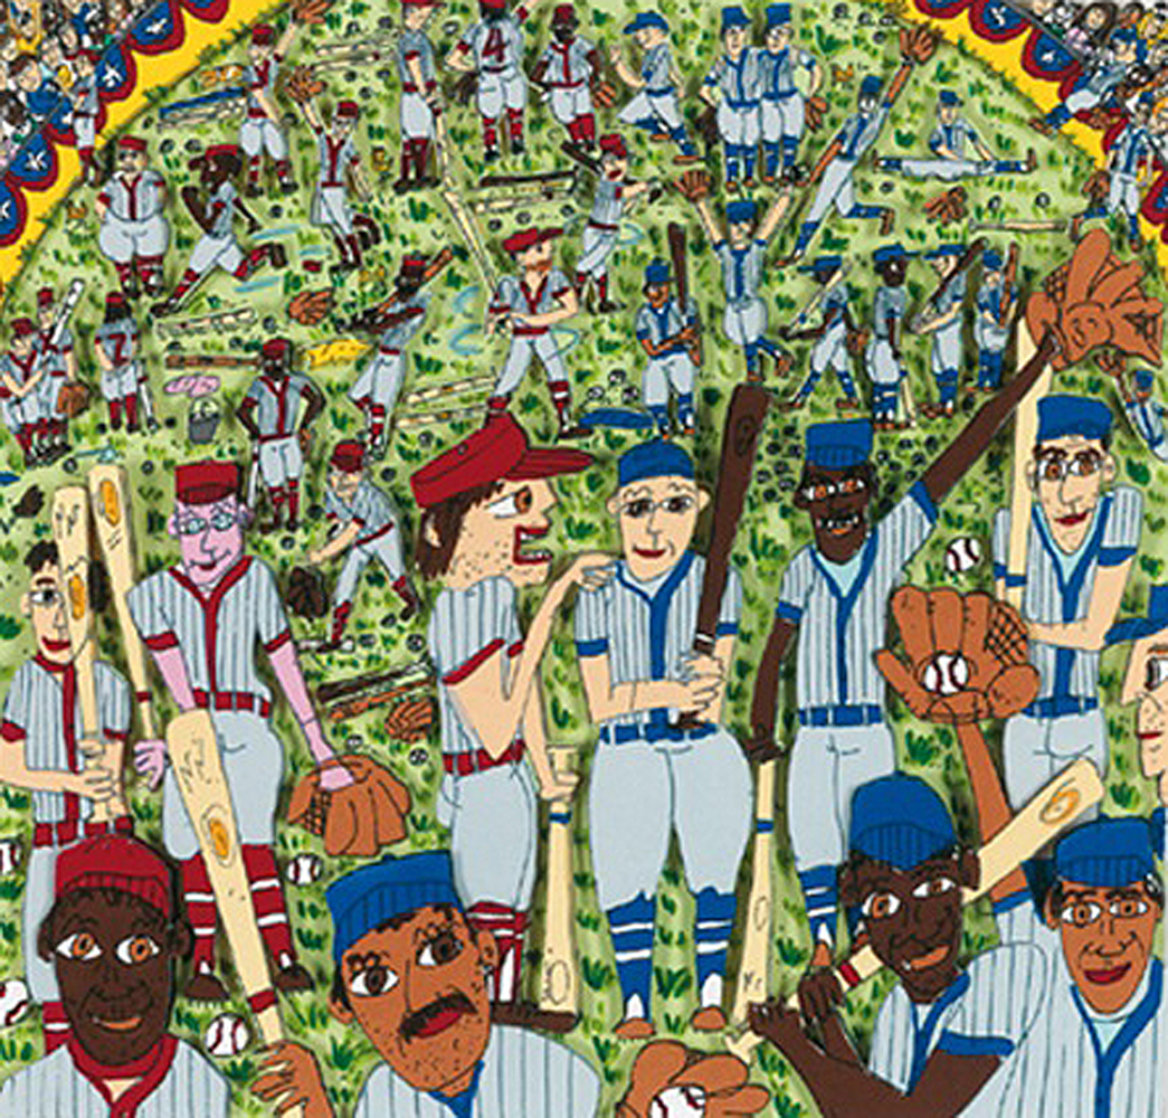 It Ain't Over Till It's Over 3-D 1992 Limited Edition Print by James Rizzi